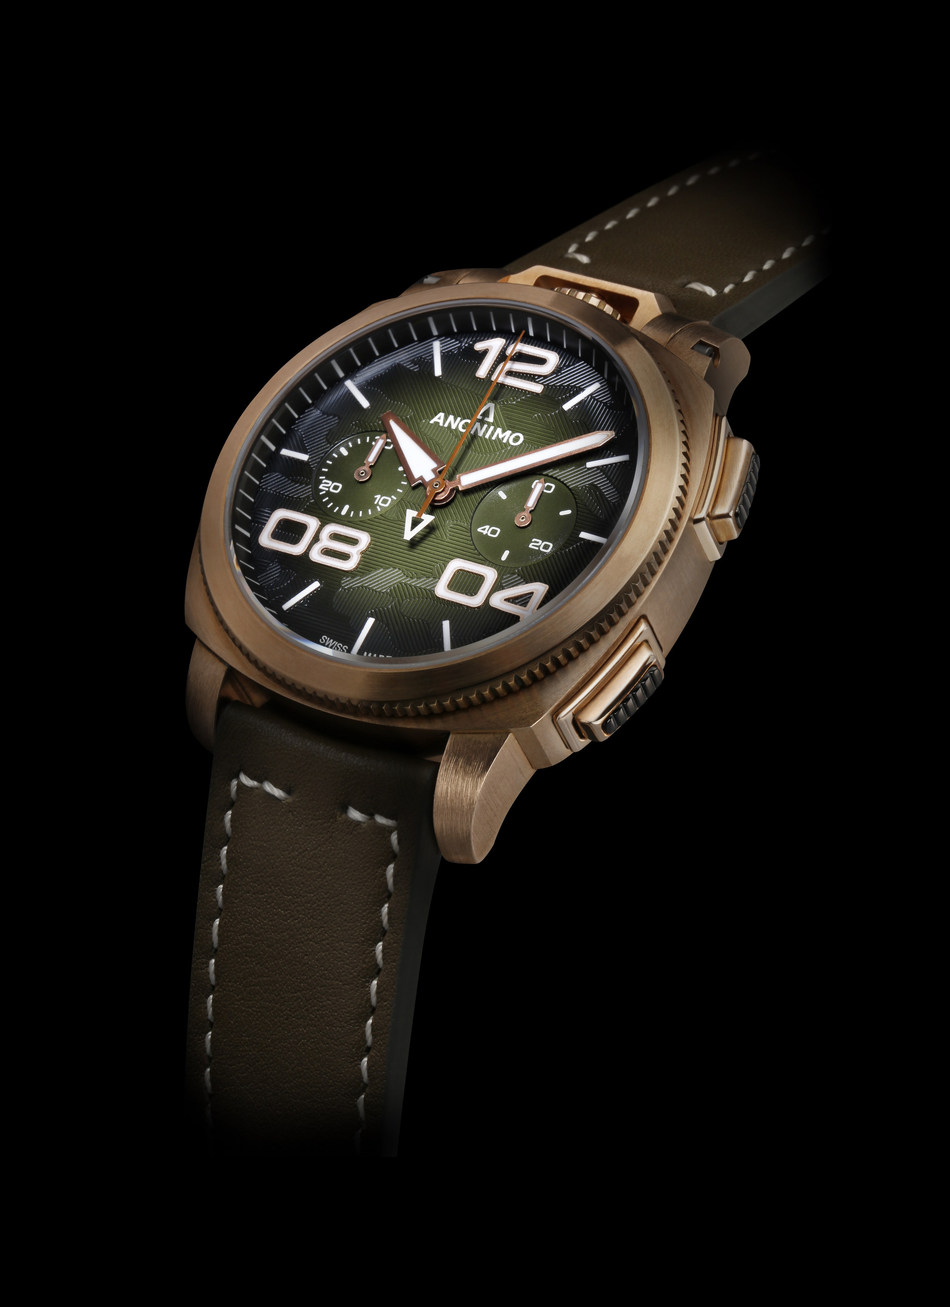 Introducing the Limited Edition Militare Alpini Camouflage. Available in brown or green guilloche dial with camouflage design. 97 pieces of each model.